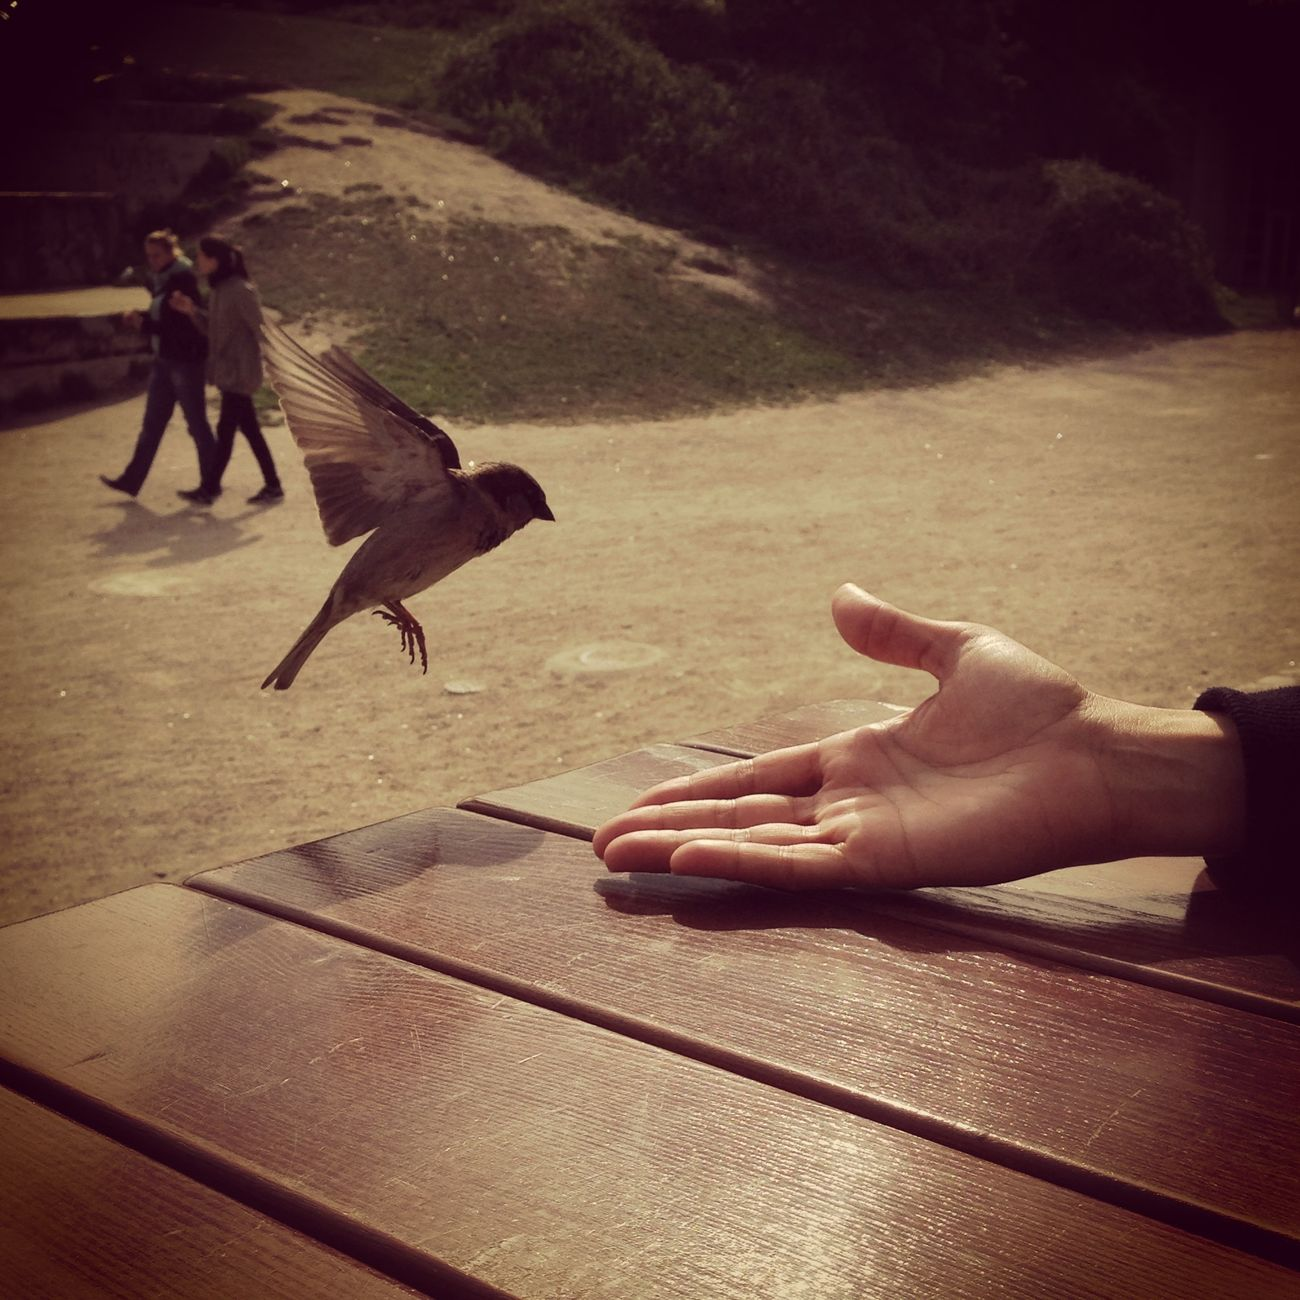 Feeding a bird from my hand